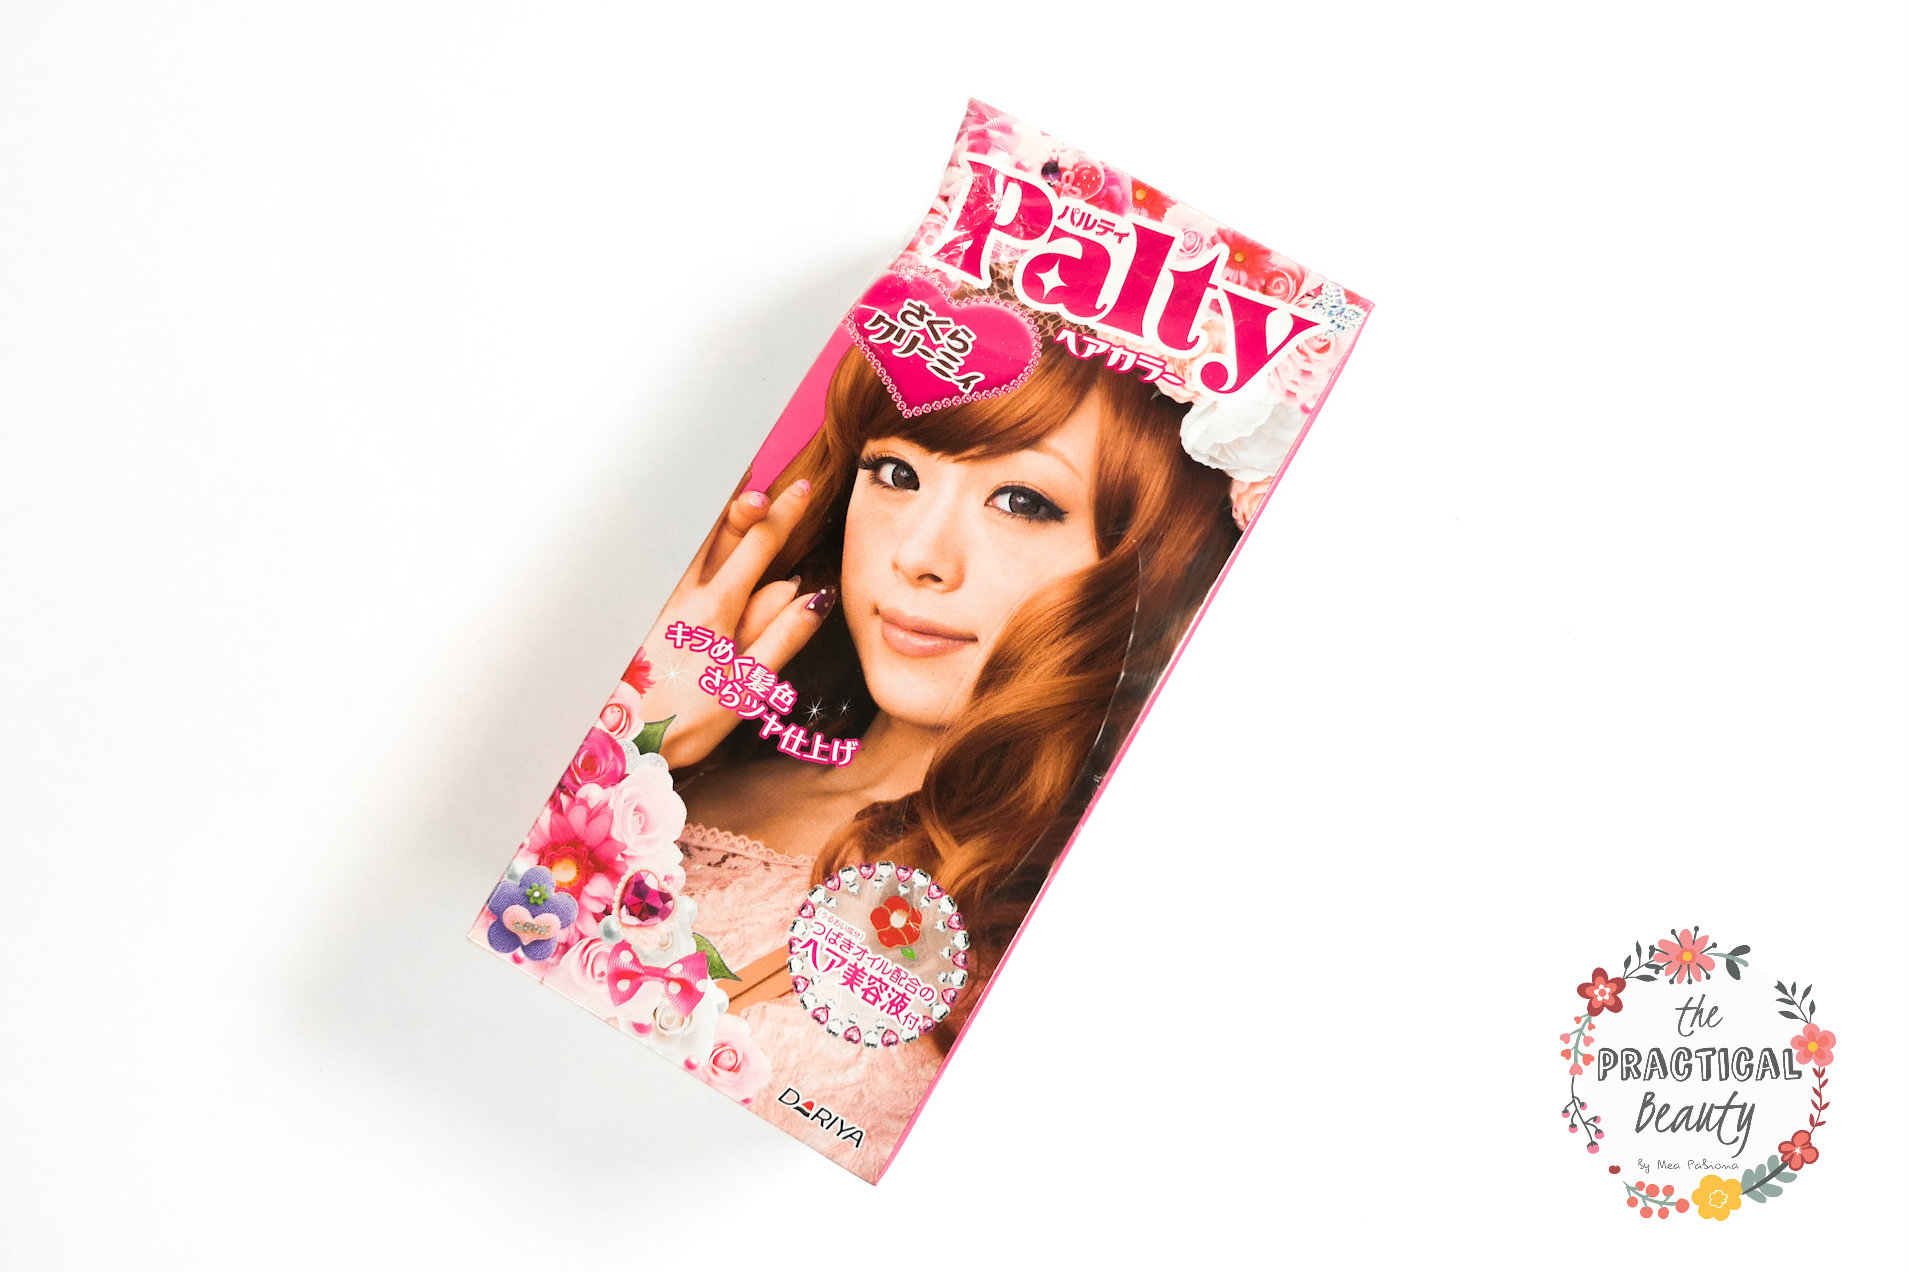 Palty Hair Dye Review in Sakura Creamy | The Practical Beauty